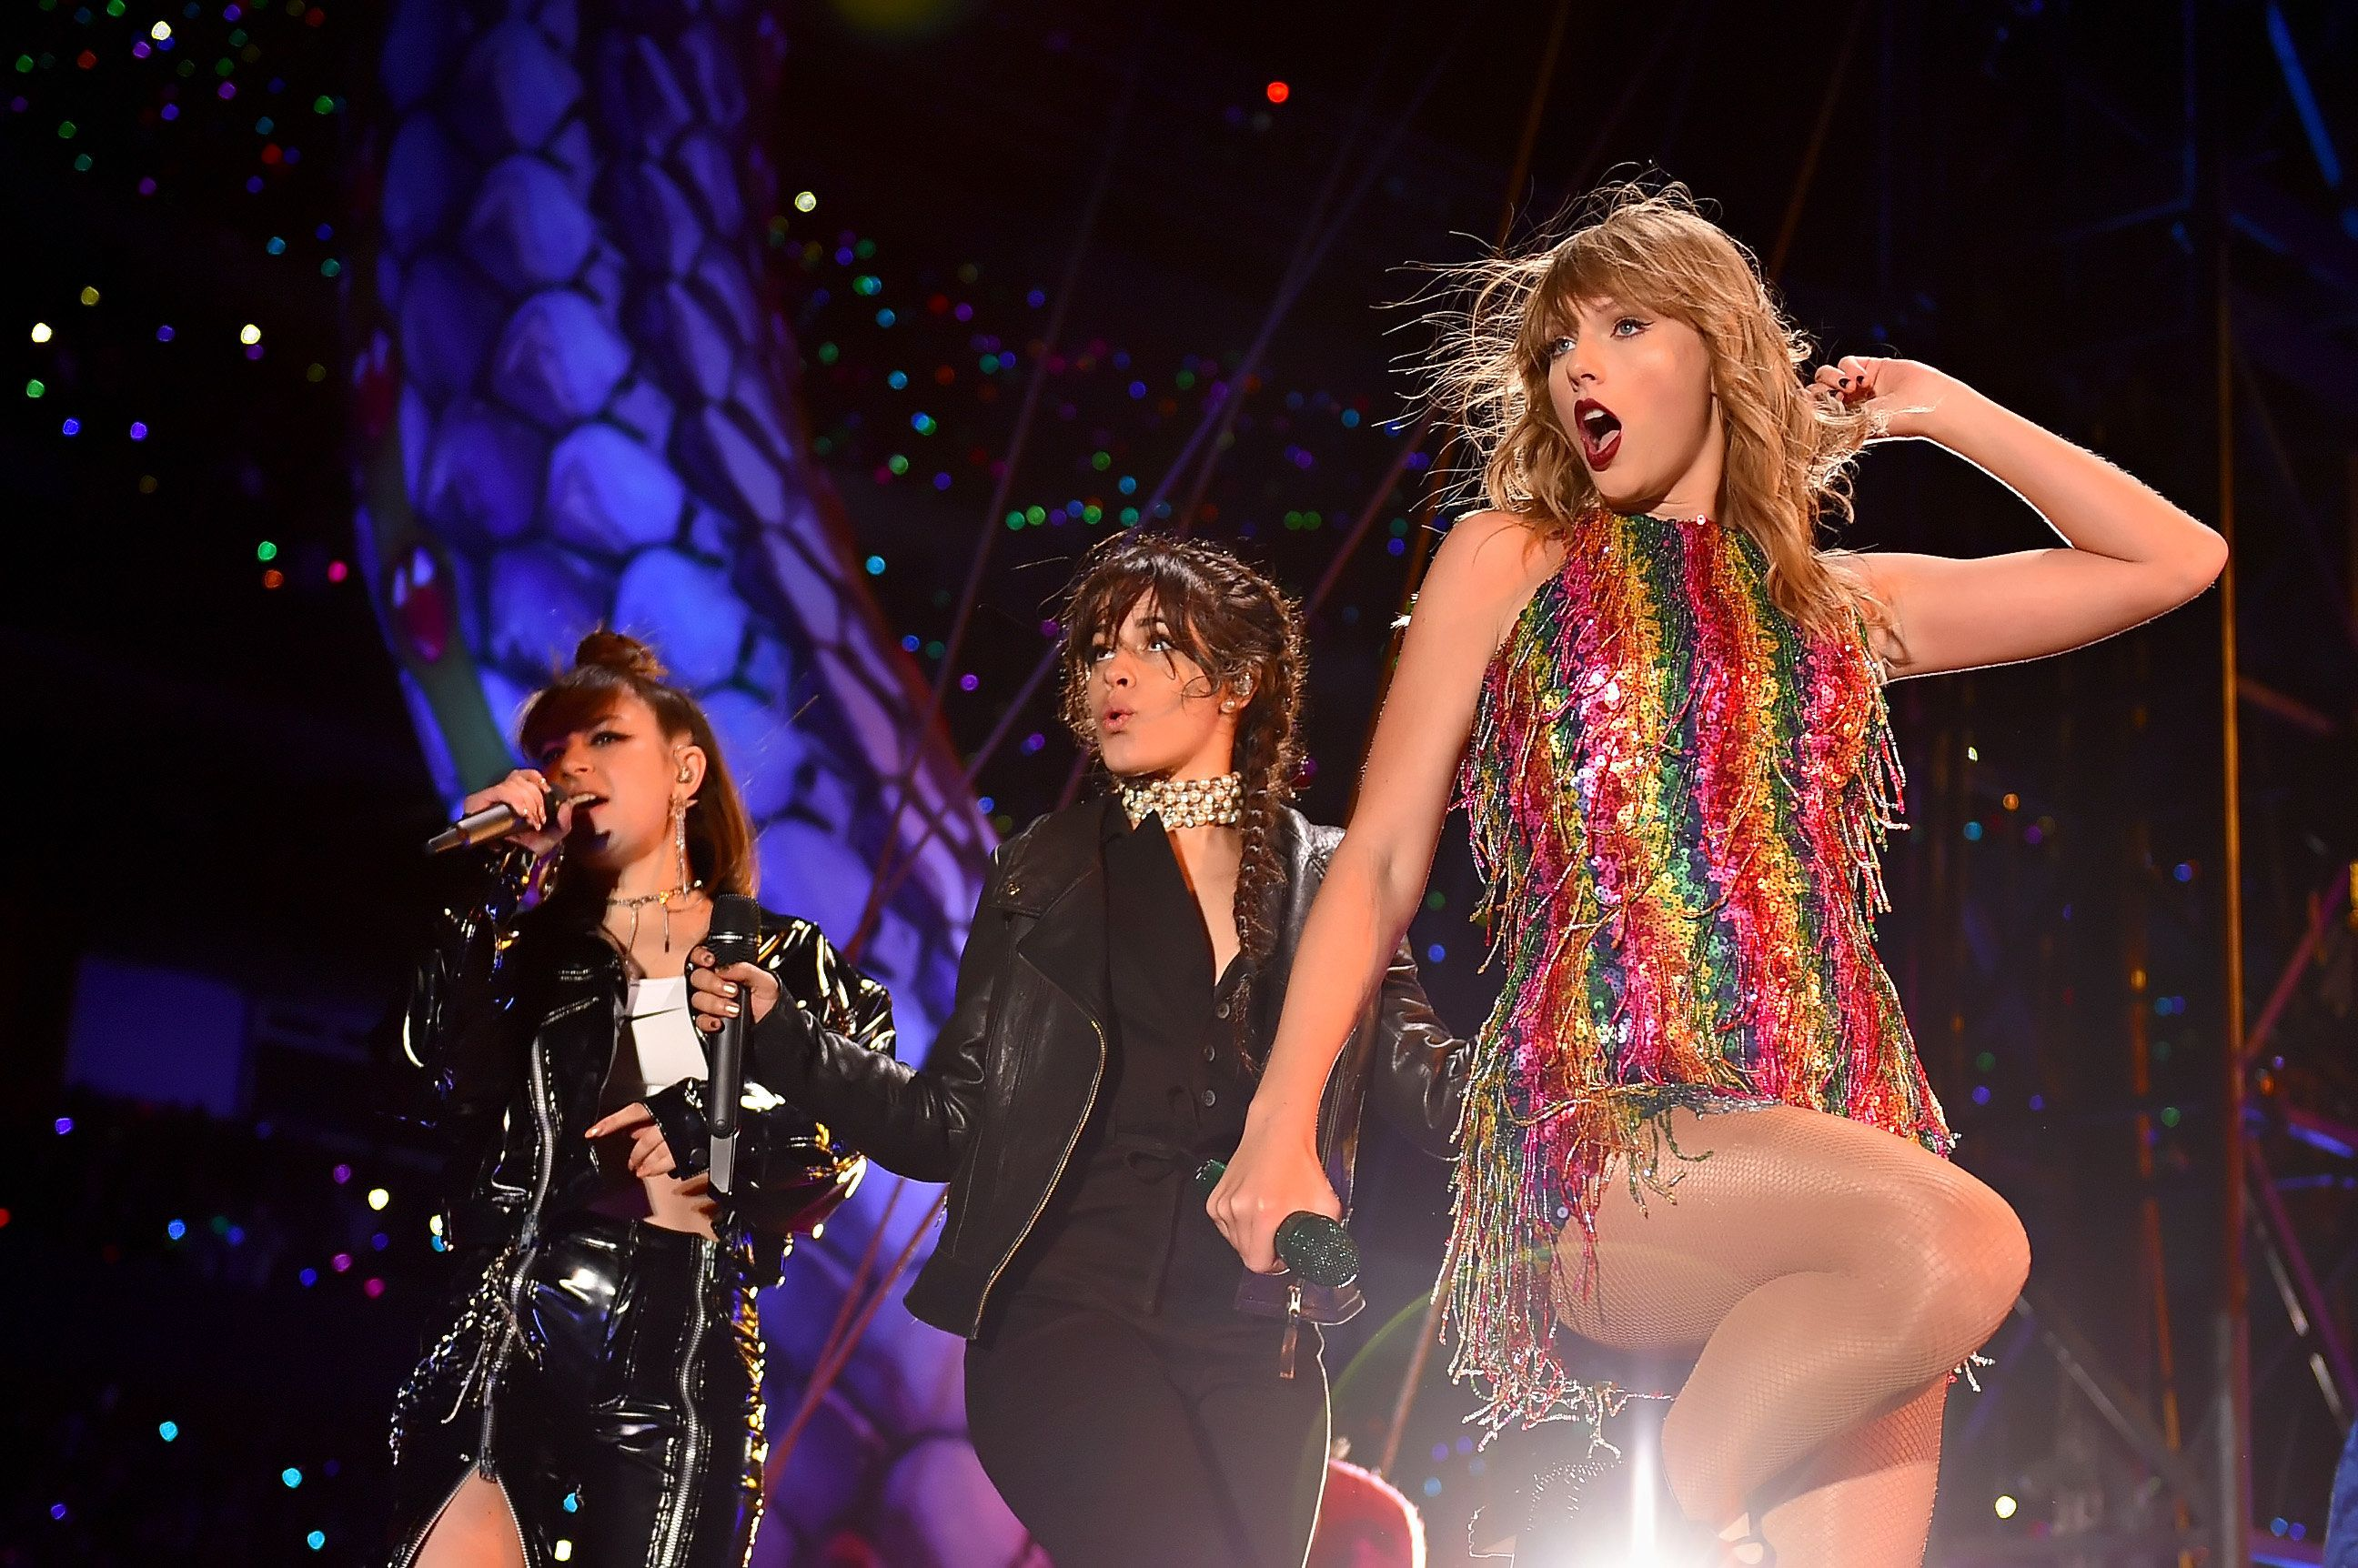 CHICAGO, IL - JUNE 01:  (L-R) Charli XCX, Camila Cabello, and Taylor Swift perform onstage during the 2018 reputation Stadium Tour at Soldier Field on June 1, 2018 in Chicago, Illinois.  (Photo by John Shearer/TAS18/Getty Images)